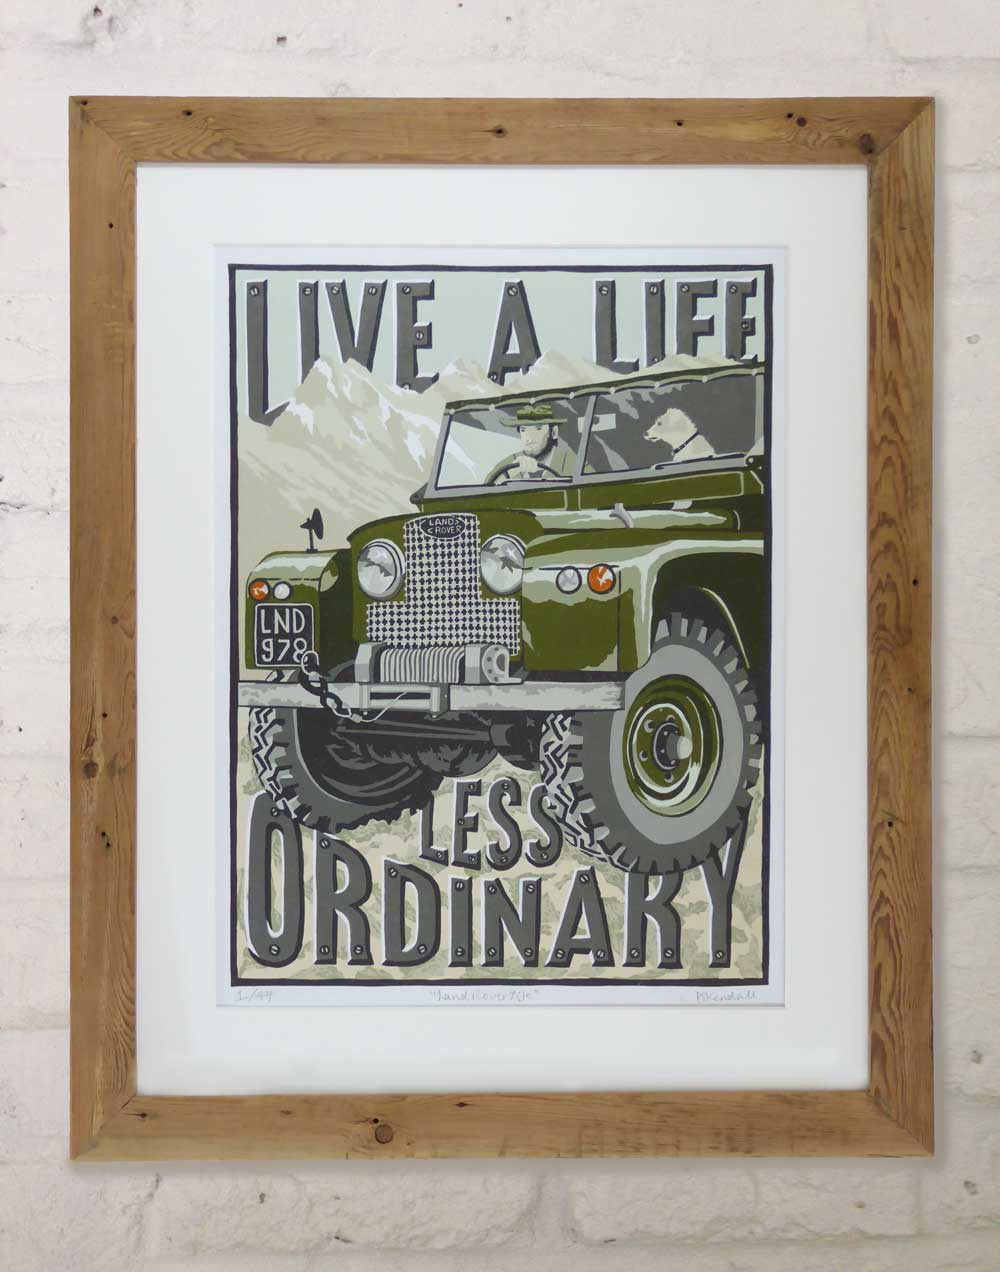 Old Land Rover print - a gift for people who love Land Rovers by The Enlightened Hound